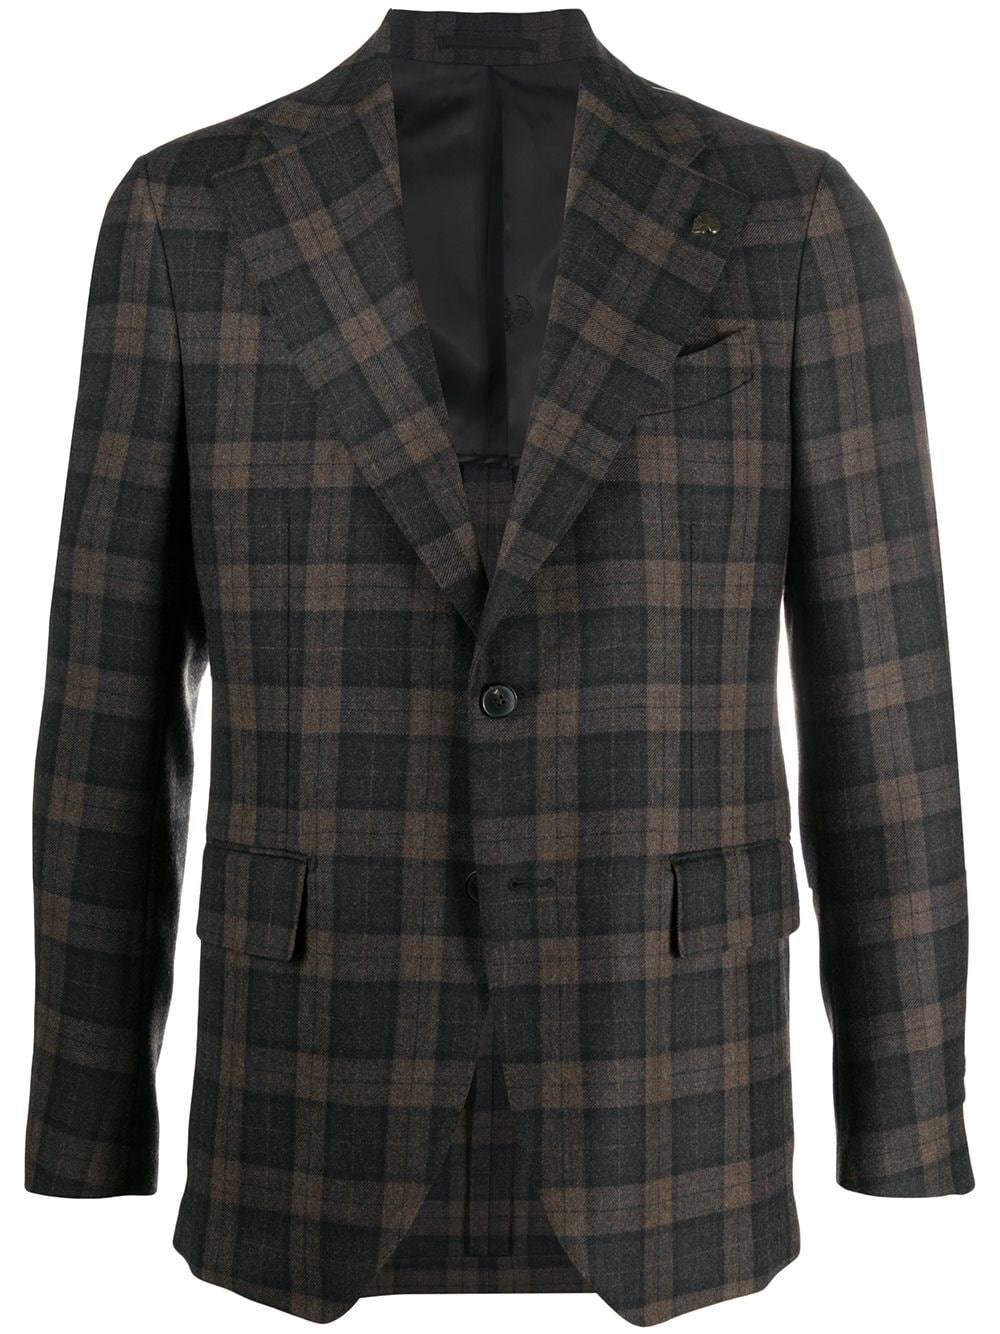 GABRIELE PASINI Plaid Print Single-Breasted Blazer